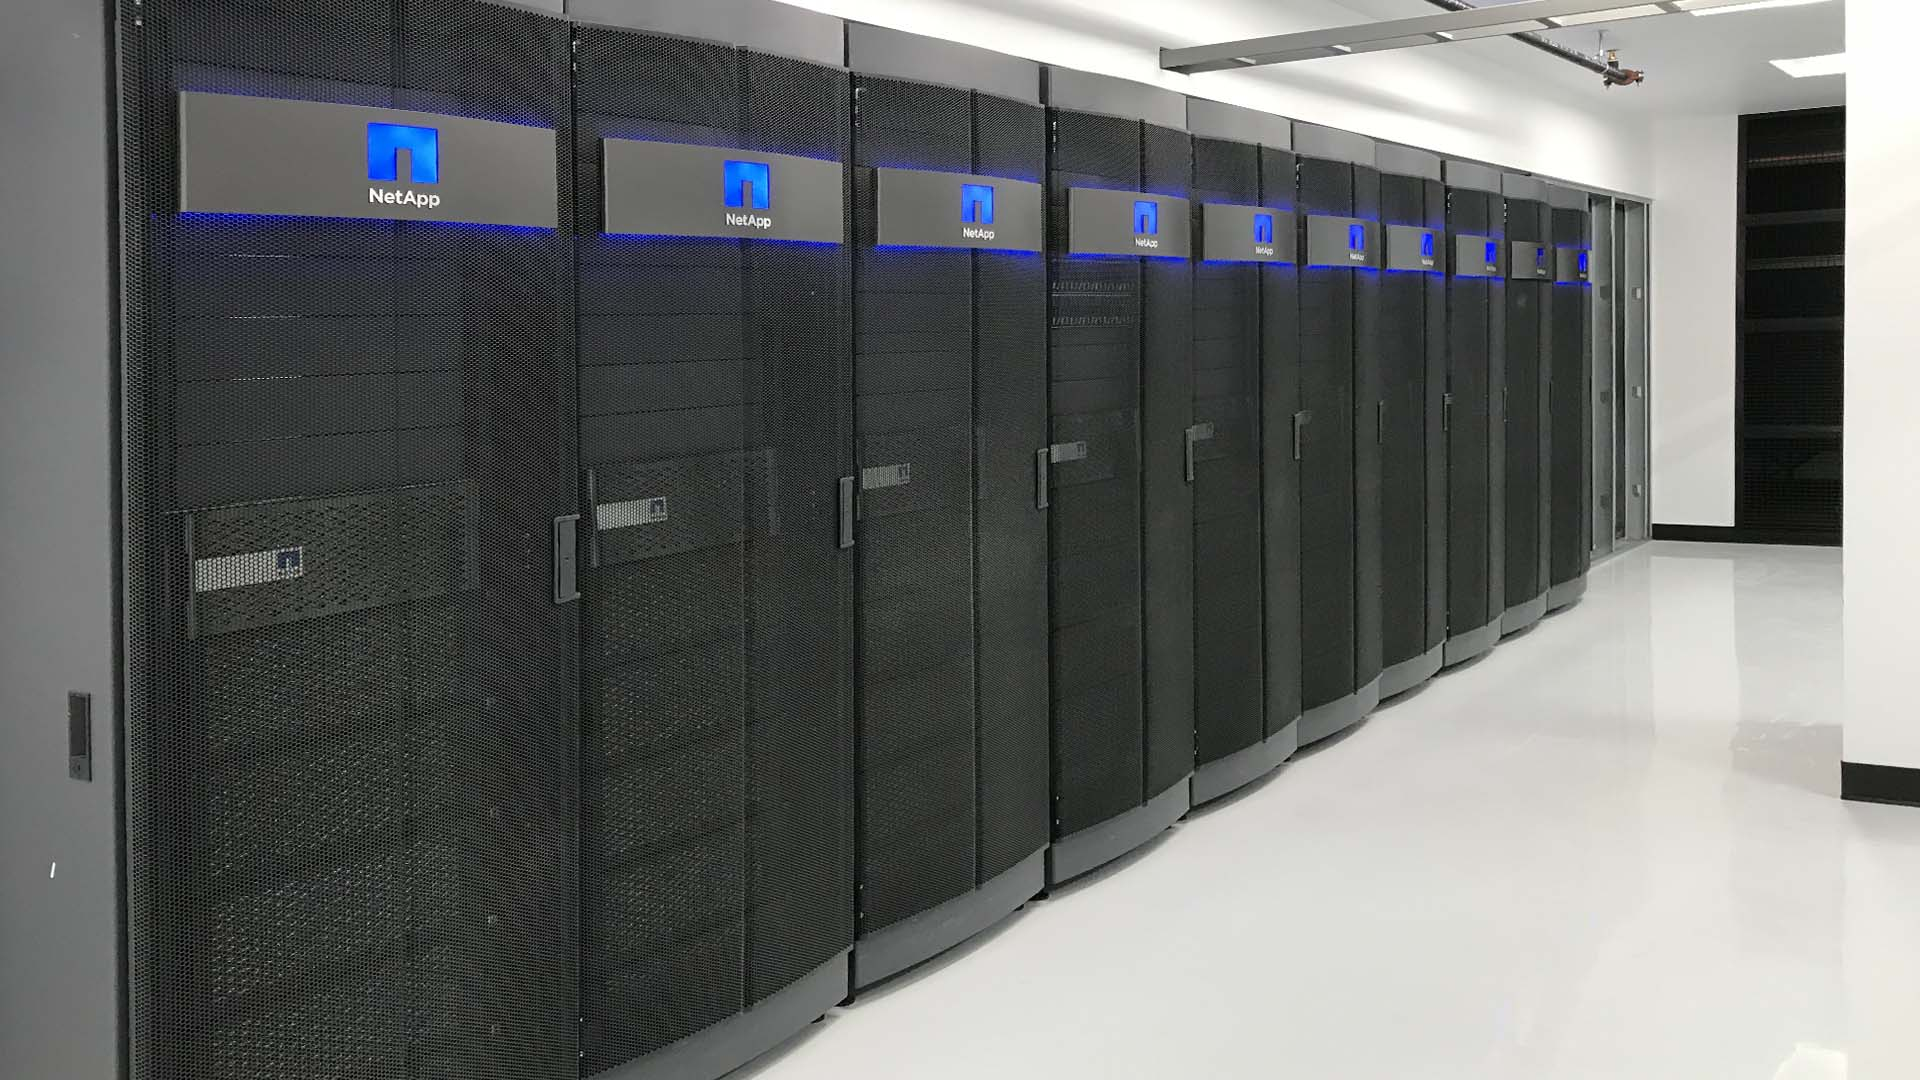 Customized Michigan Data Center and Colocation service options such as suites for high density computing.